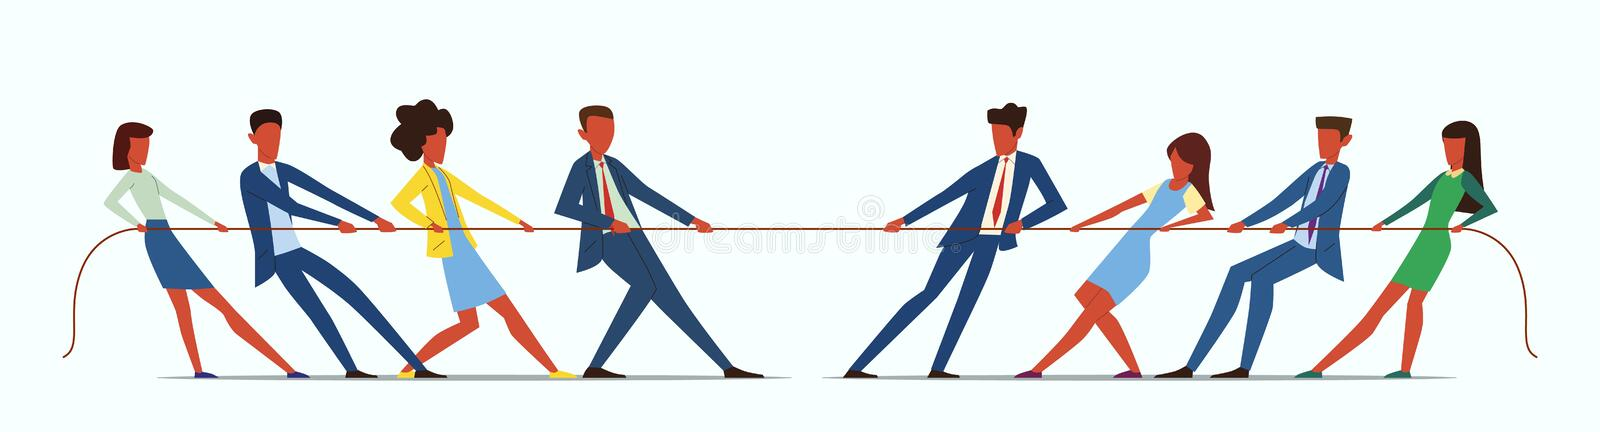 Team war. Young people pulling rope, employees competition. Conflict in business team. Office management teamwork games. Vector fight power battle competitive vector illustration